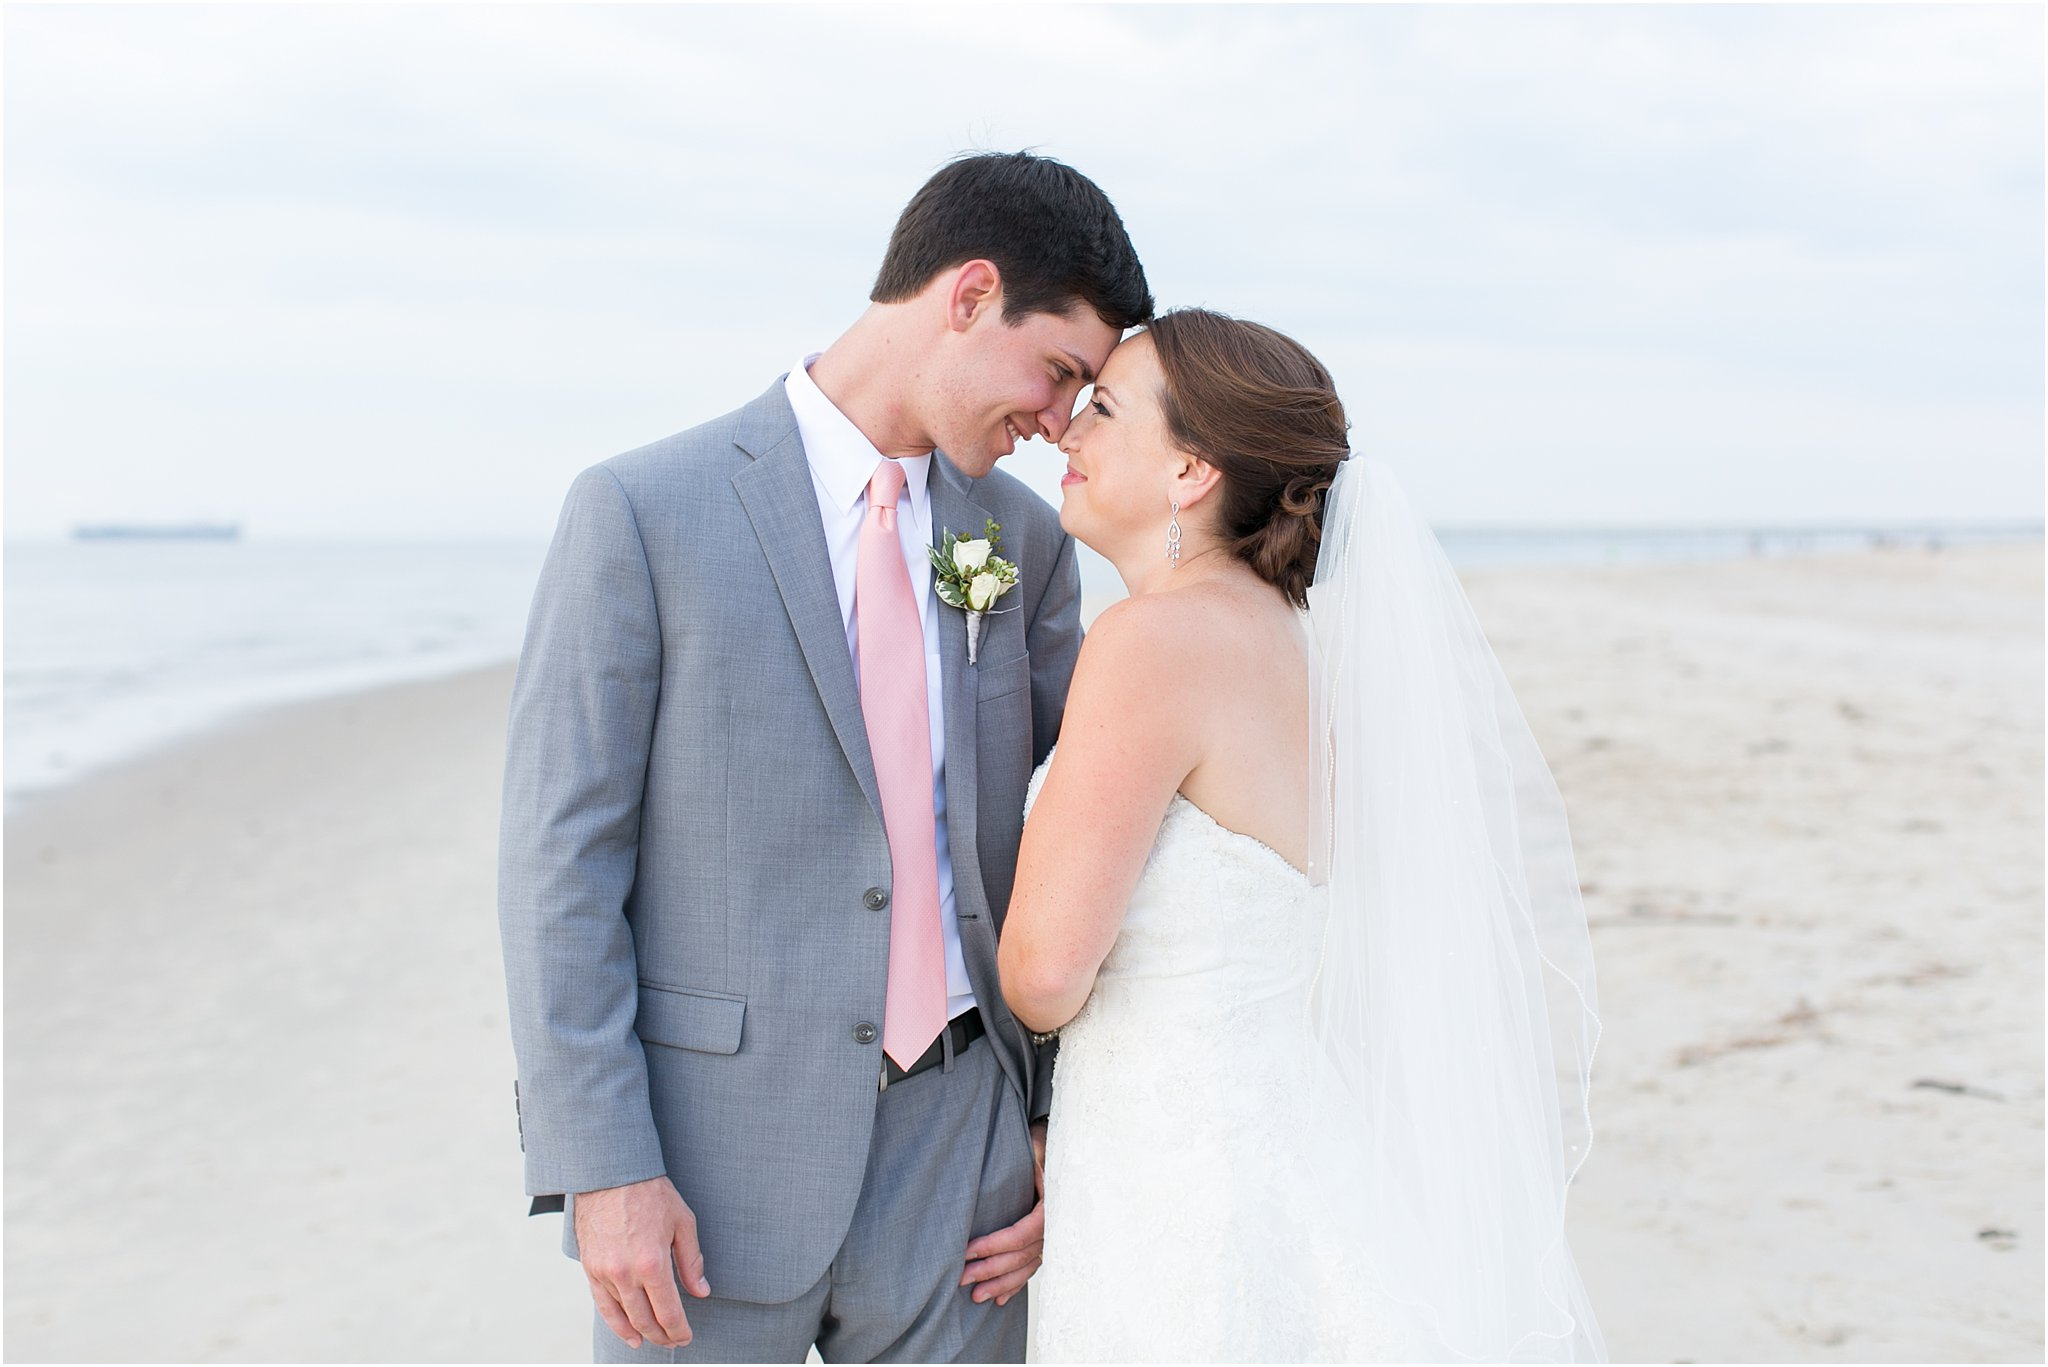 jessica_ryan_photography_wedding_photography_virginiabeach_virginia_candid_authentic_wedding_portraits_marina_shores_yacht_club_chesapeake_bay_1890